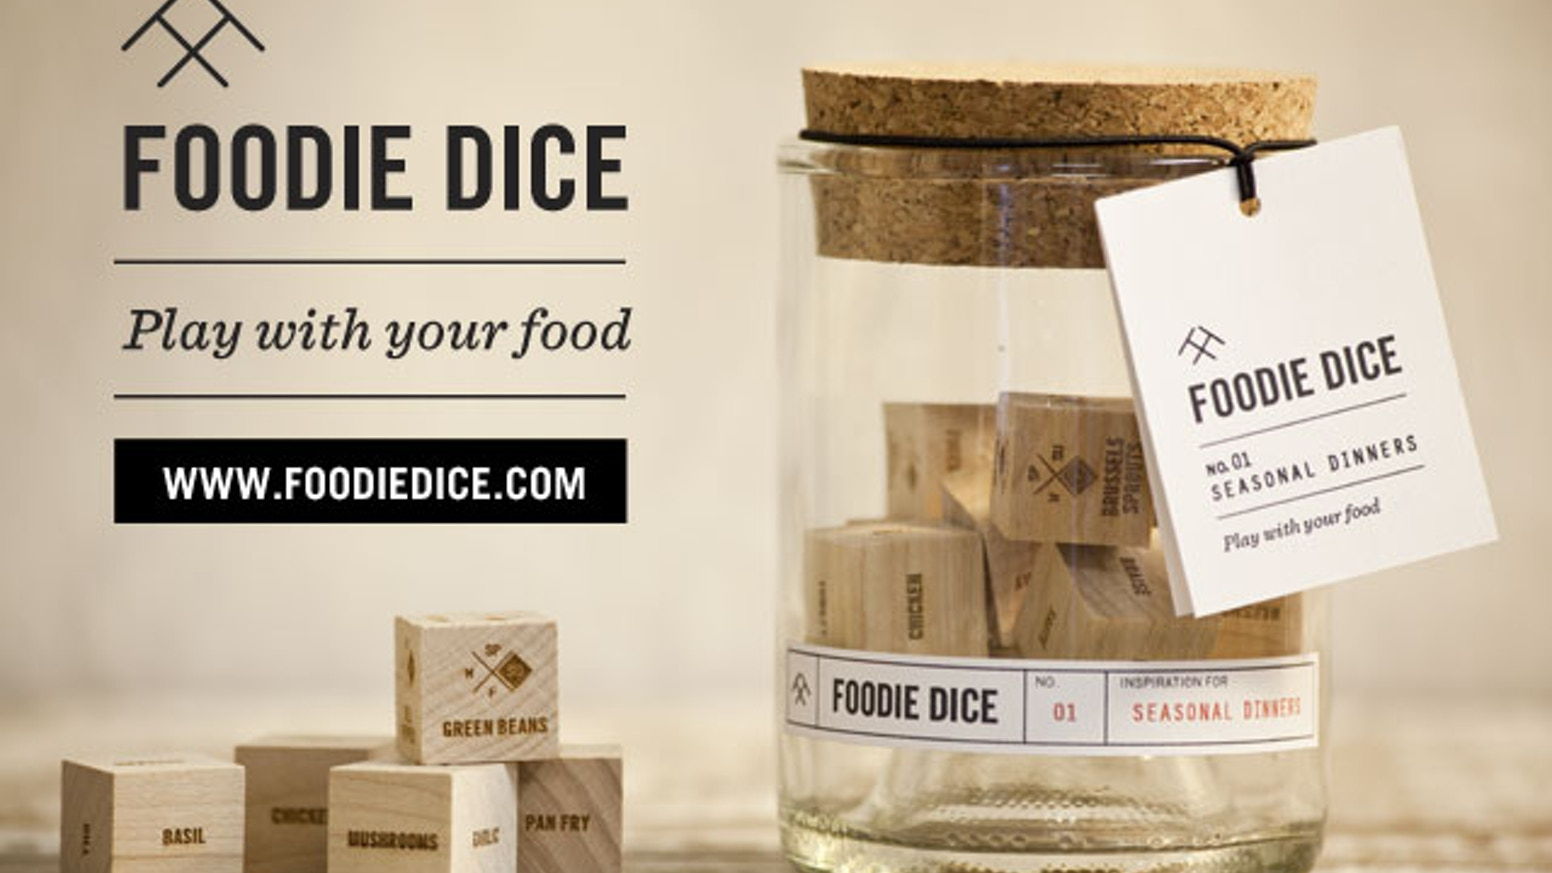 A fun new way to shake up your cooking routine, Foodie Dice is a set of 9 dice designed to inspire creative, whole-ingredients meals.